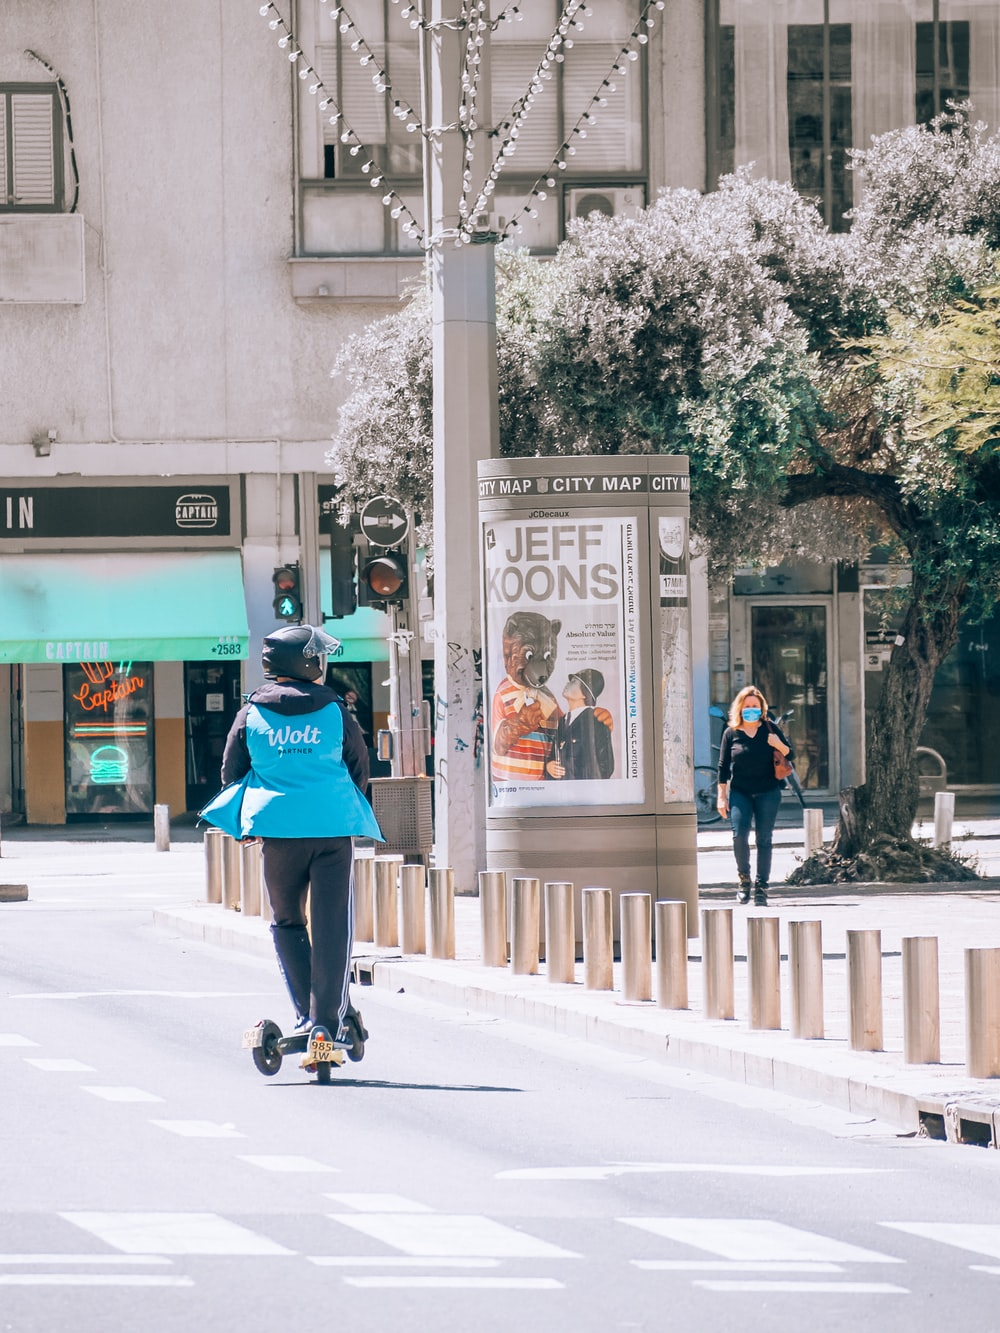 woman in green jacket and black pants riding on black skateboard during daytime